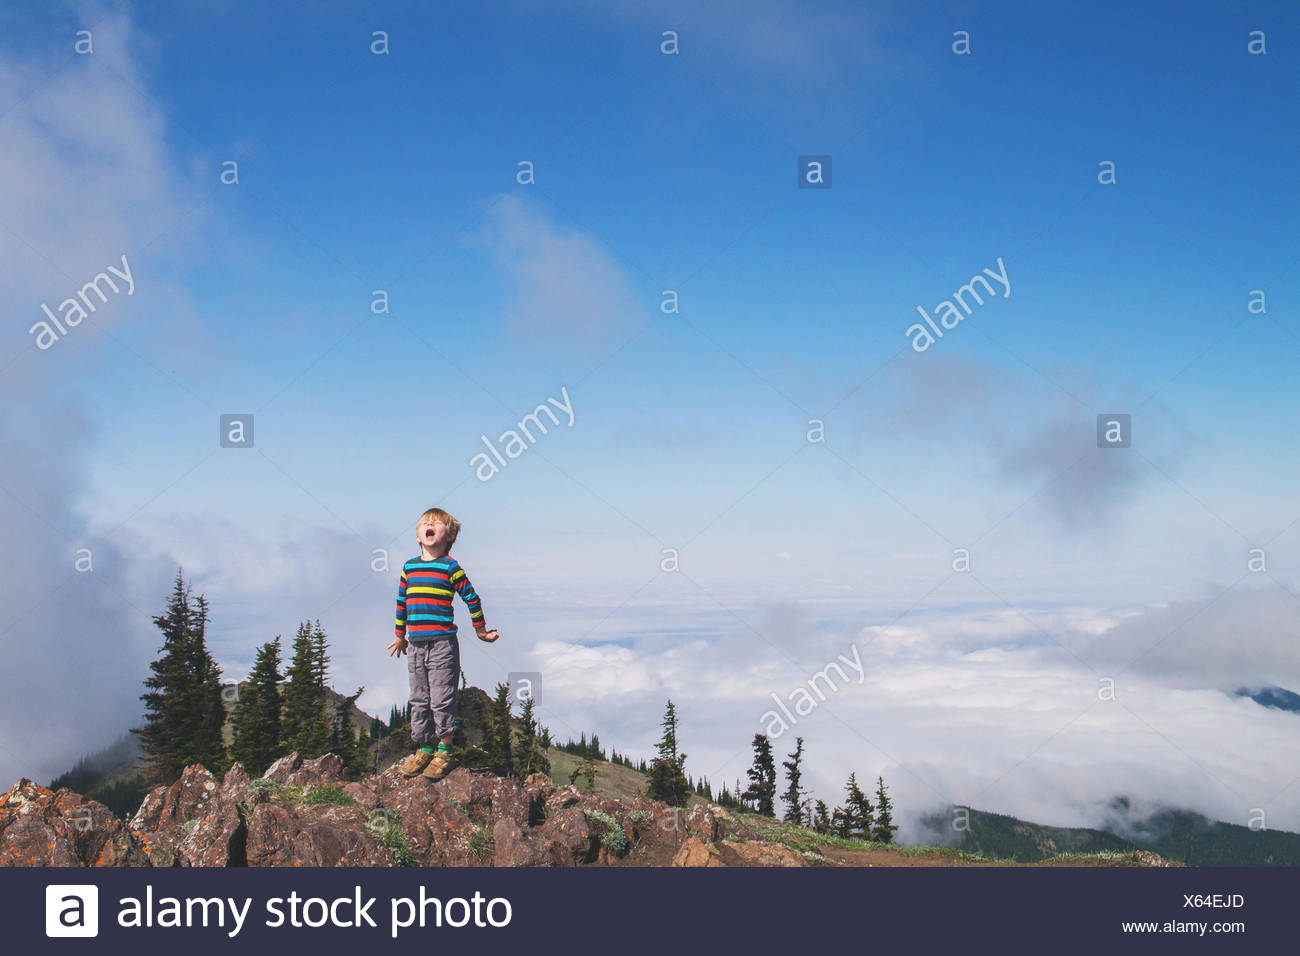 Boy standing on top of a mountain shouting - Stock Image